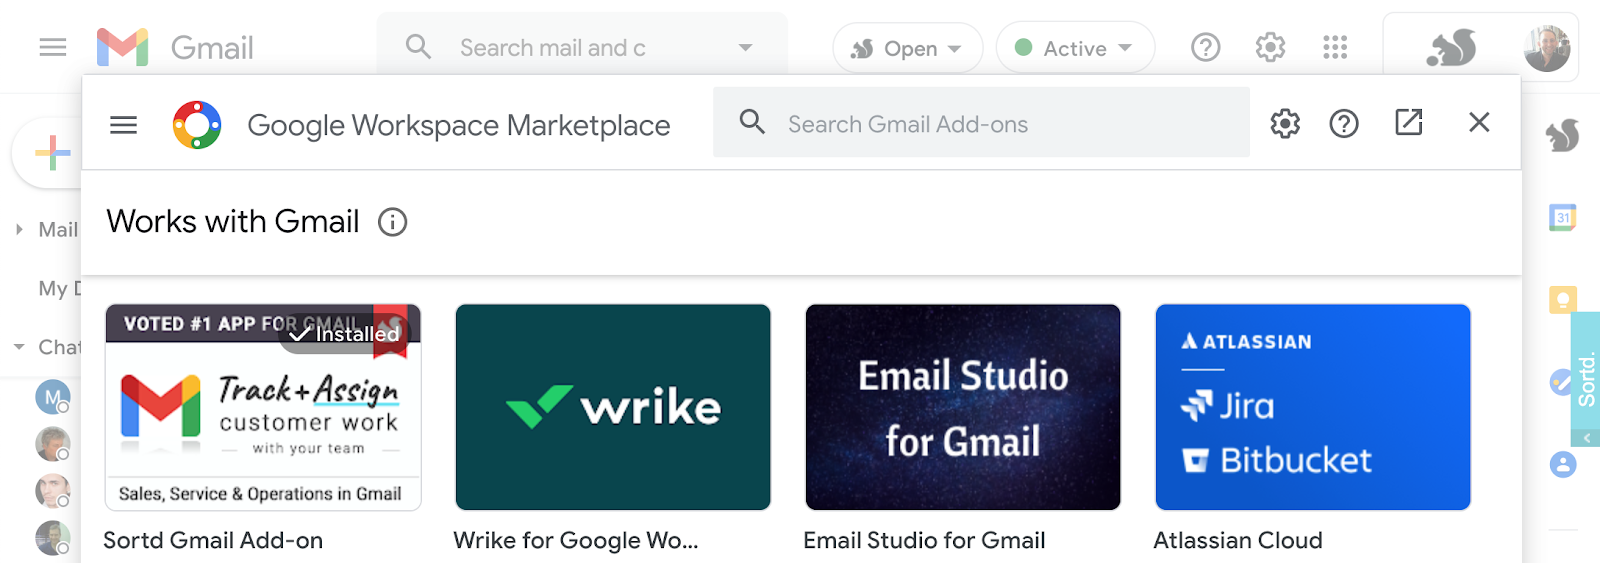 Gmail add-ons in Gmail alongside Google Chat